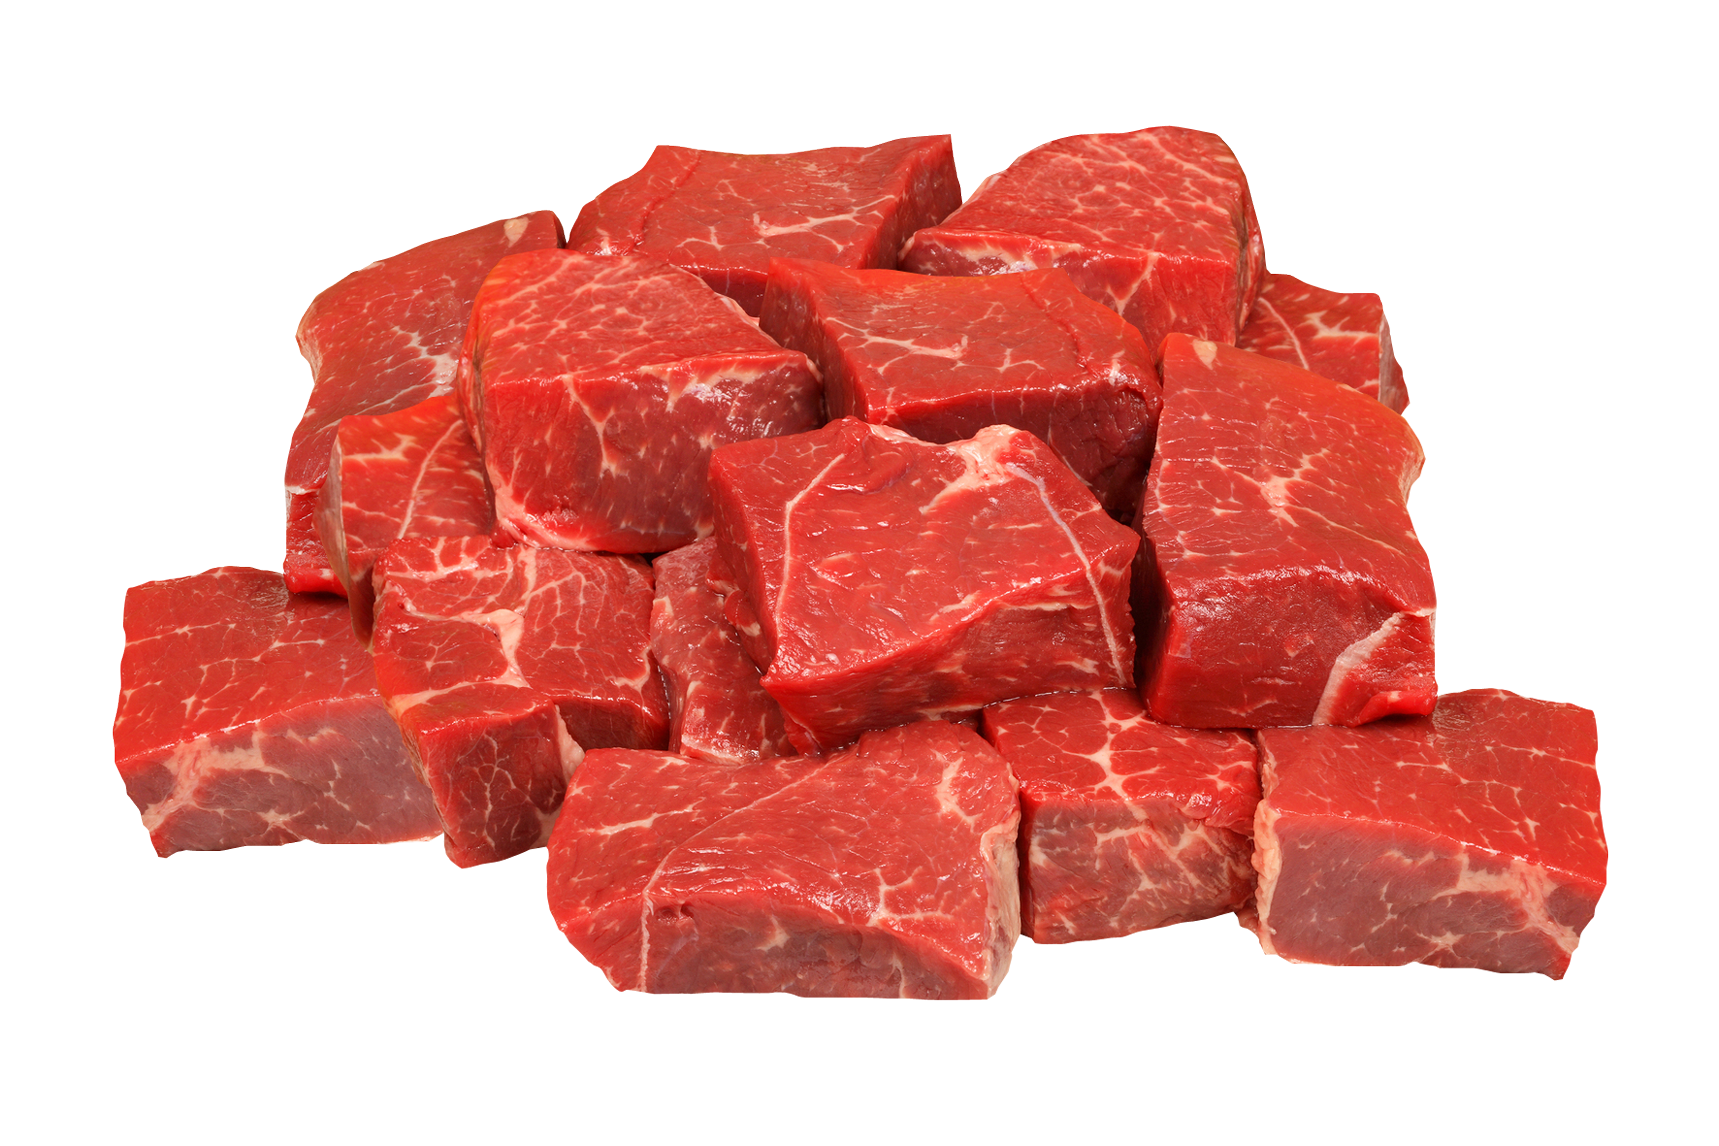 meat png transparent image pngpix #23479